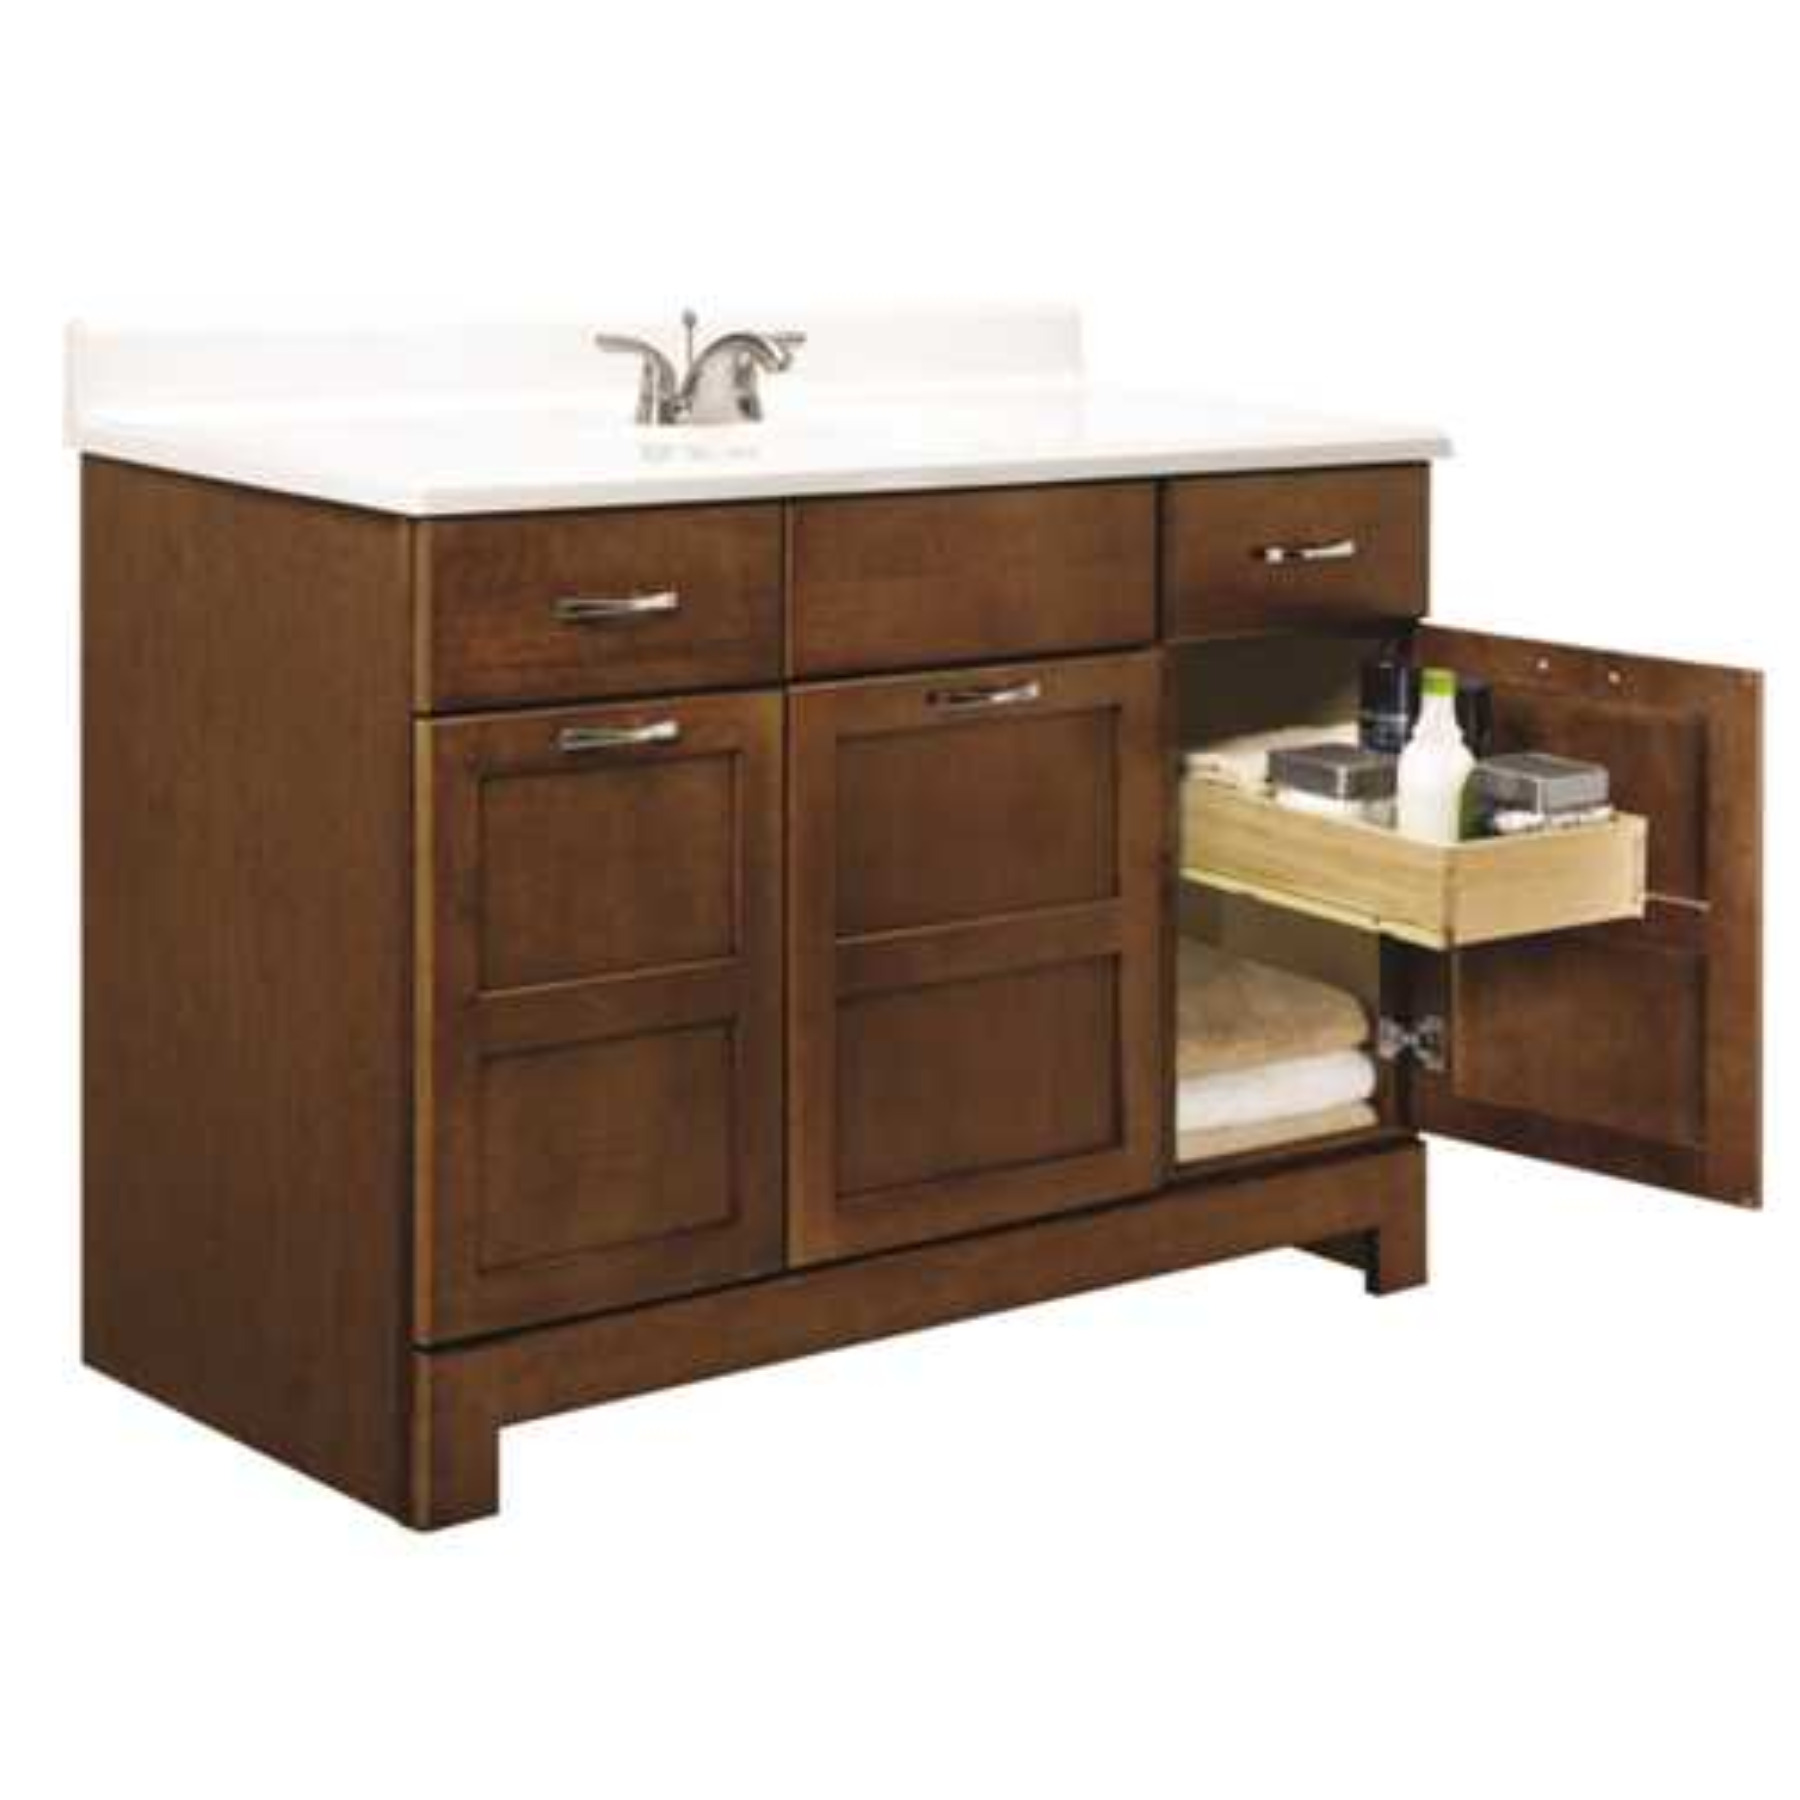 RSI HOME PRODUCTS CHANDLER BATHROOM VANITY CABINET, FULLY ASSEMBLED, COGNAC, 48X21X33-1/2""